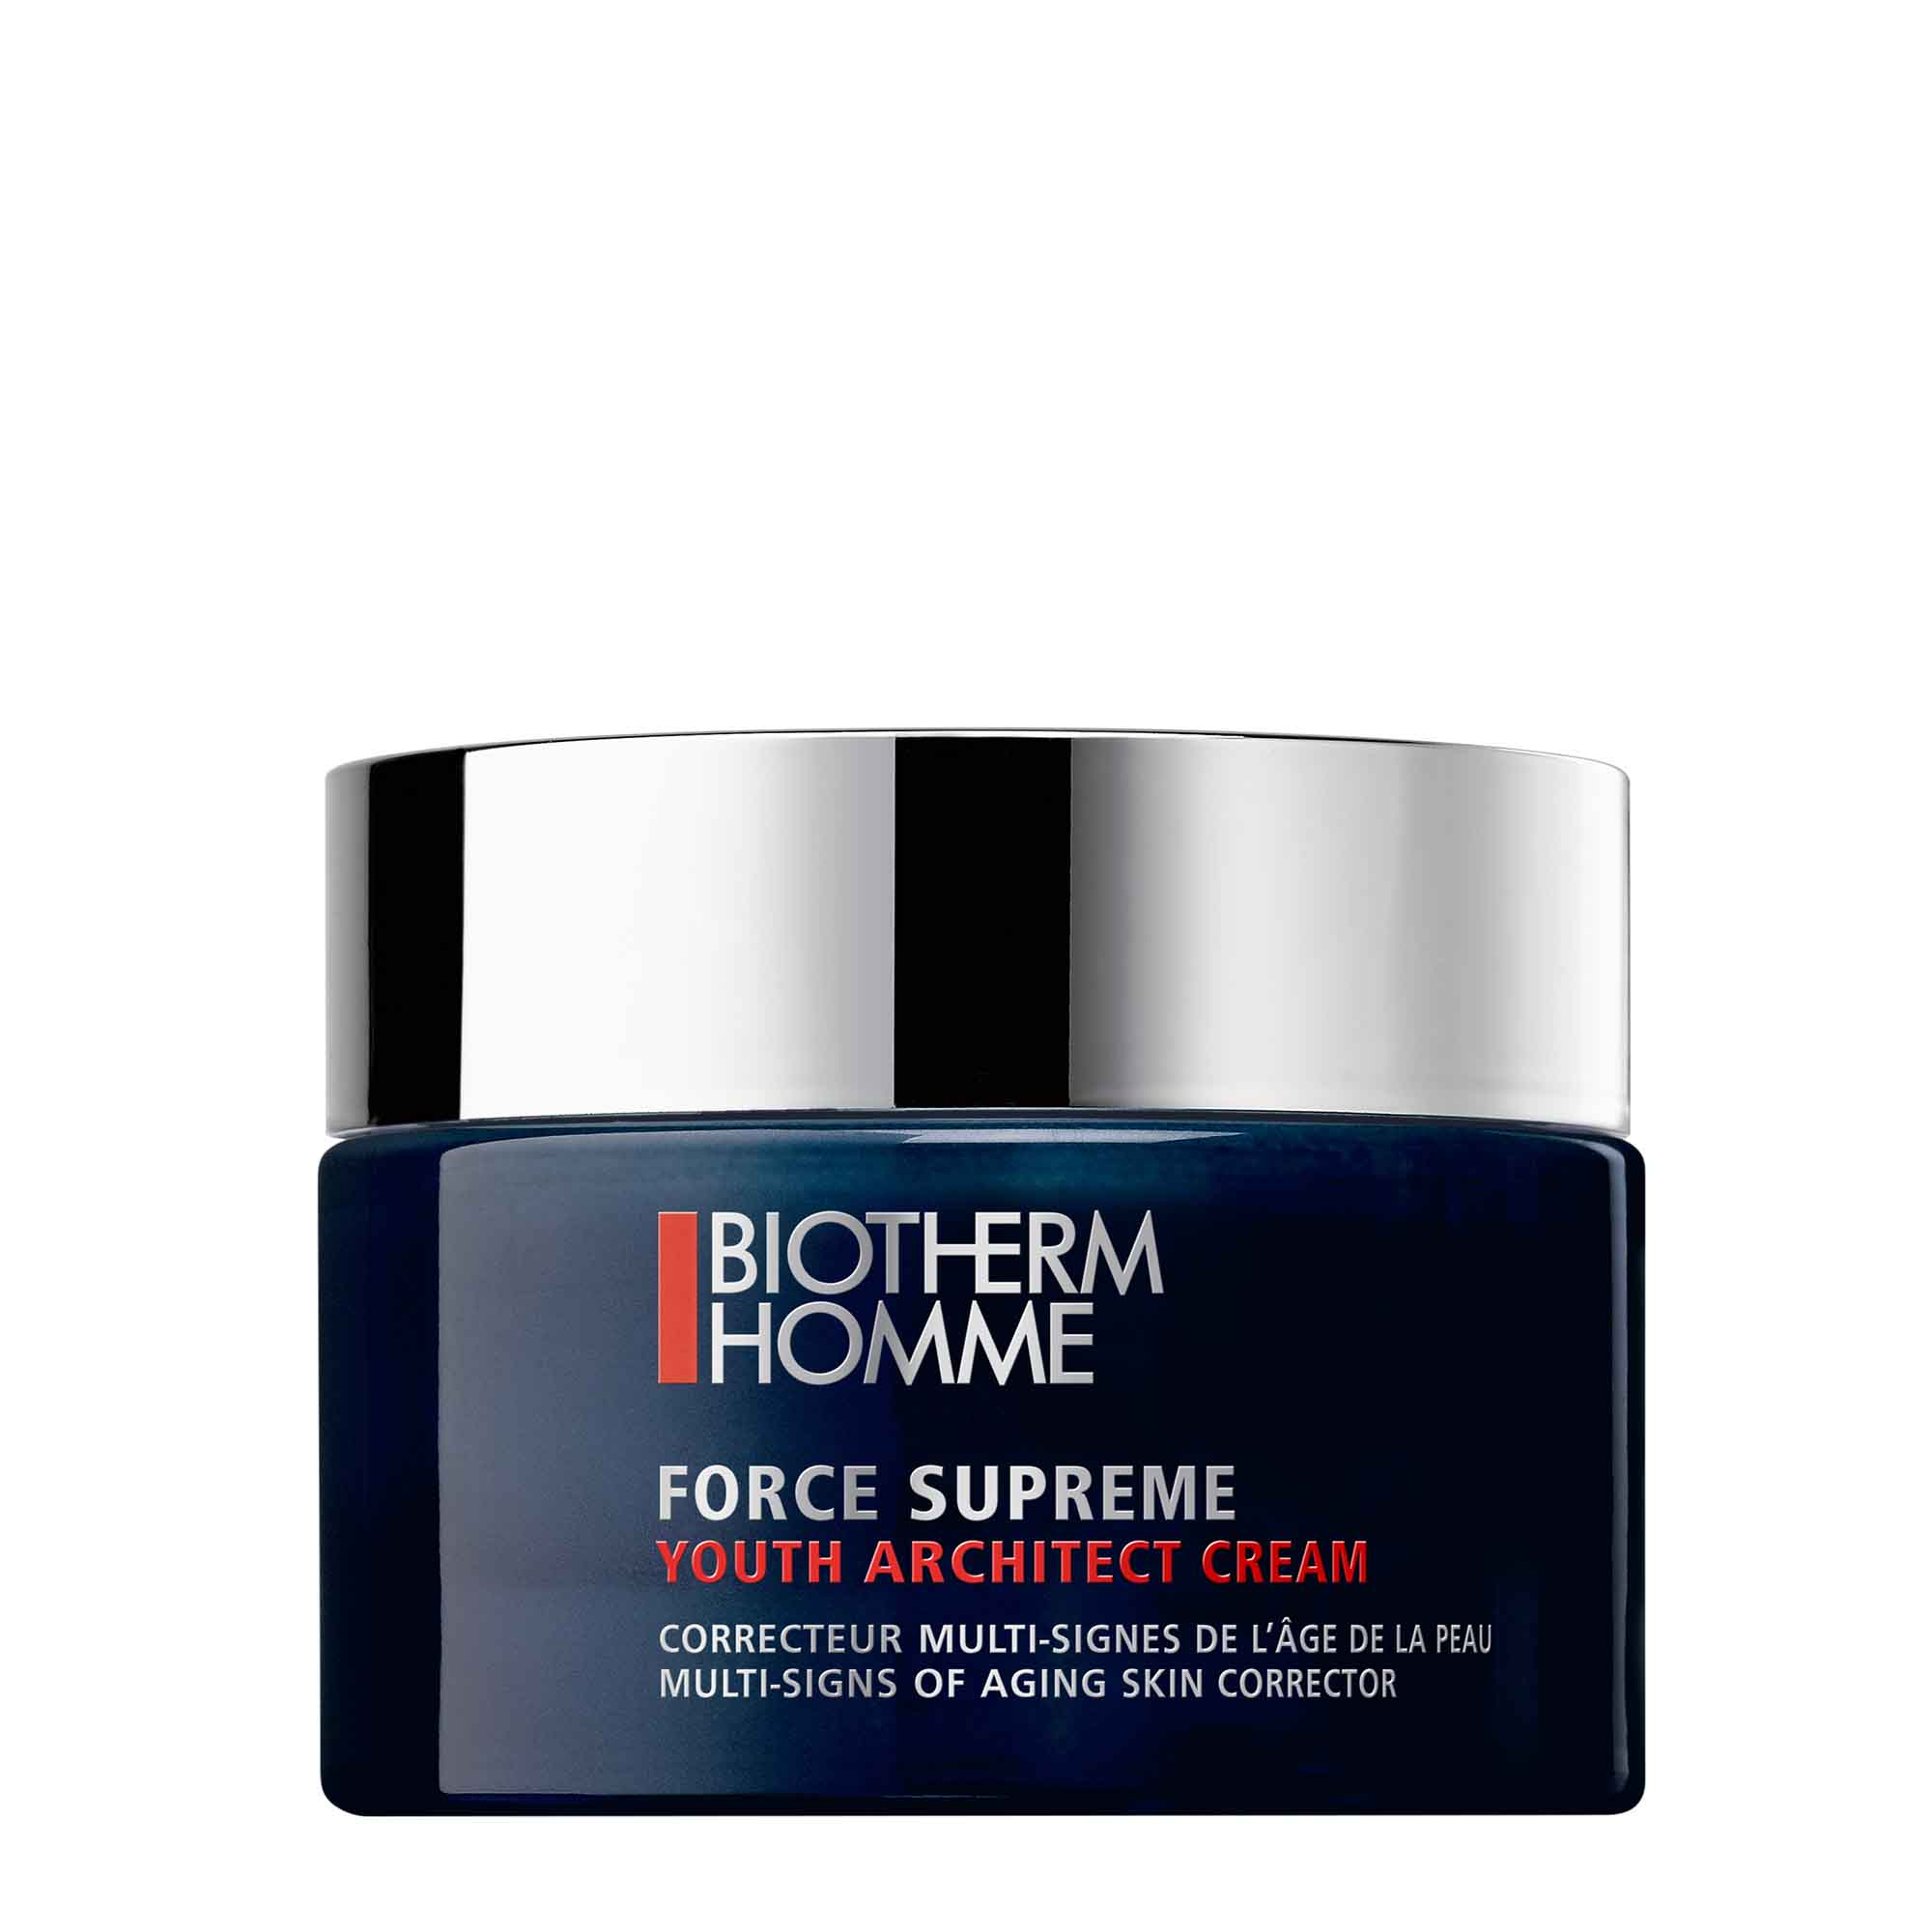 Force Supreme Youth Architect Multi-Signs Of Aging Skin Corrector